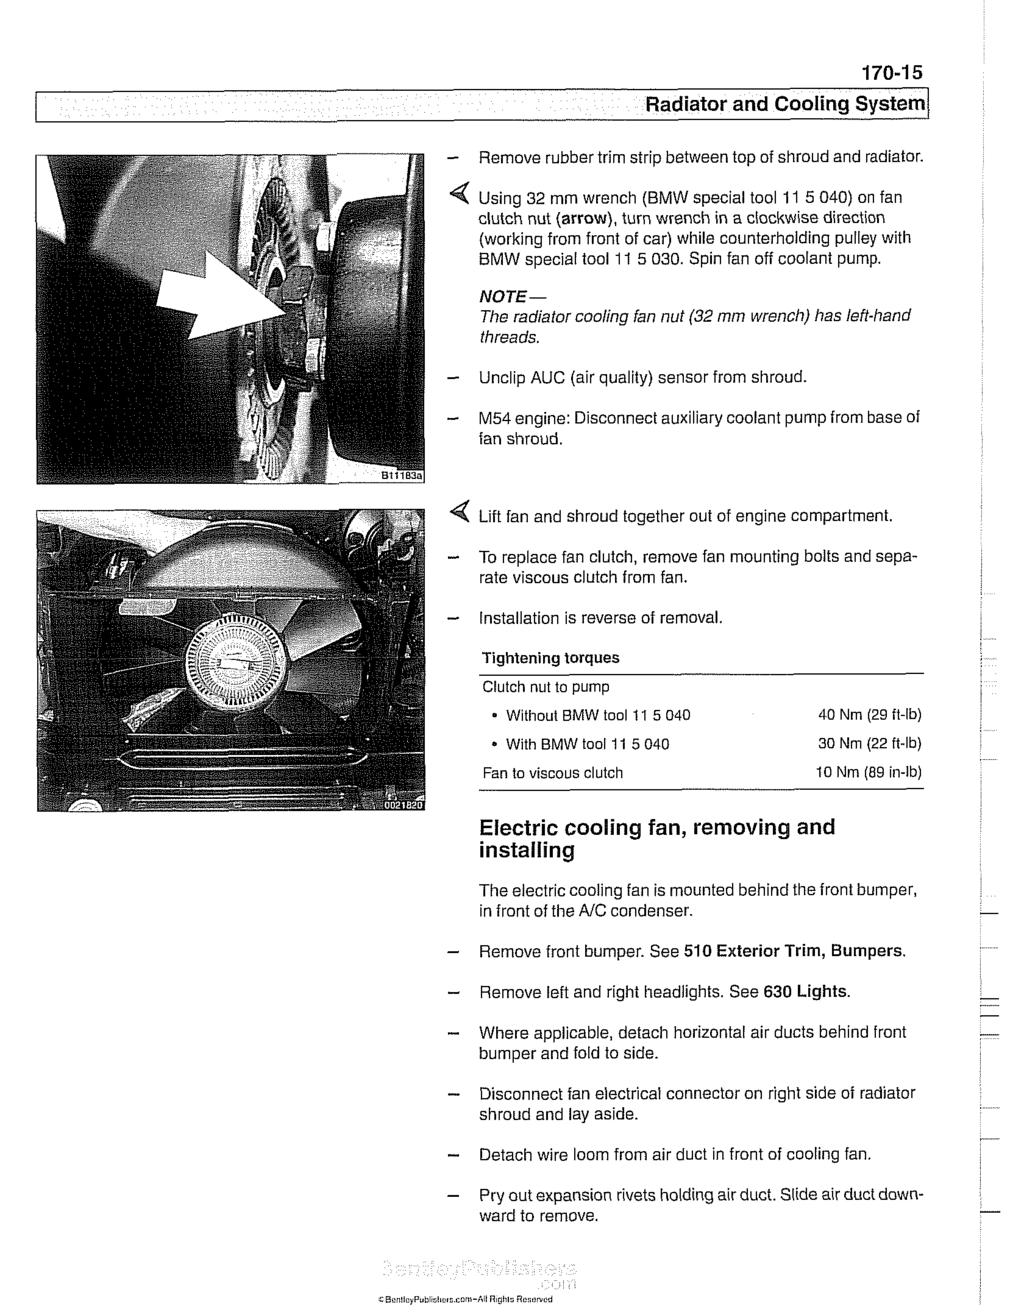 I Radiator and Cooling System - PDF